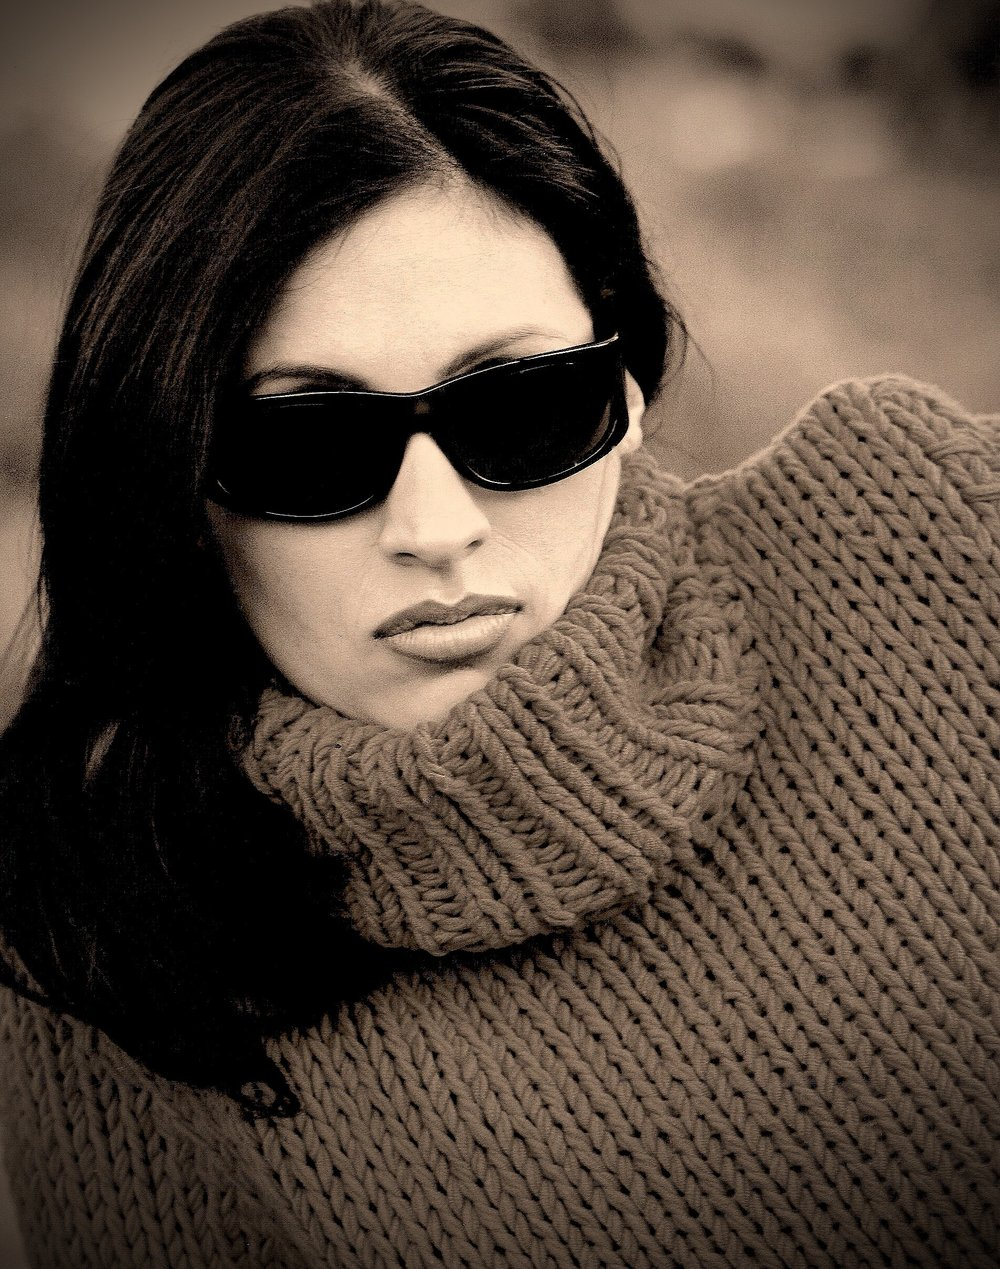 Model photographed on cloudy day with 85mm 5.6@60th 100 ASA.